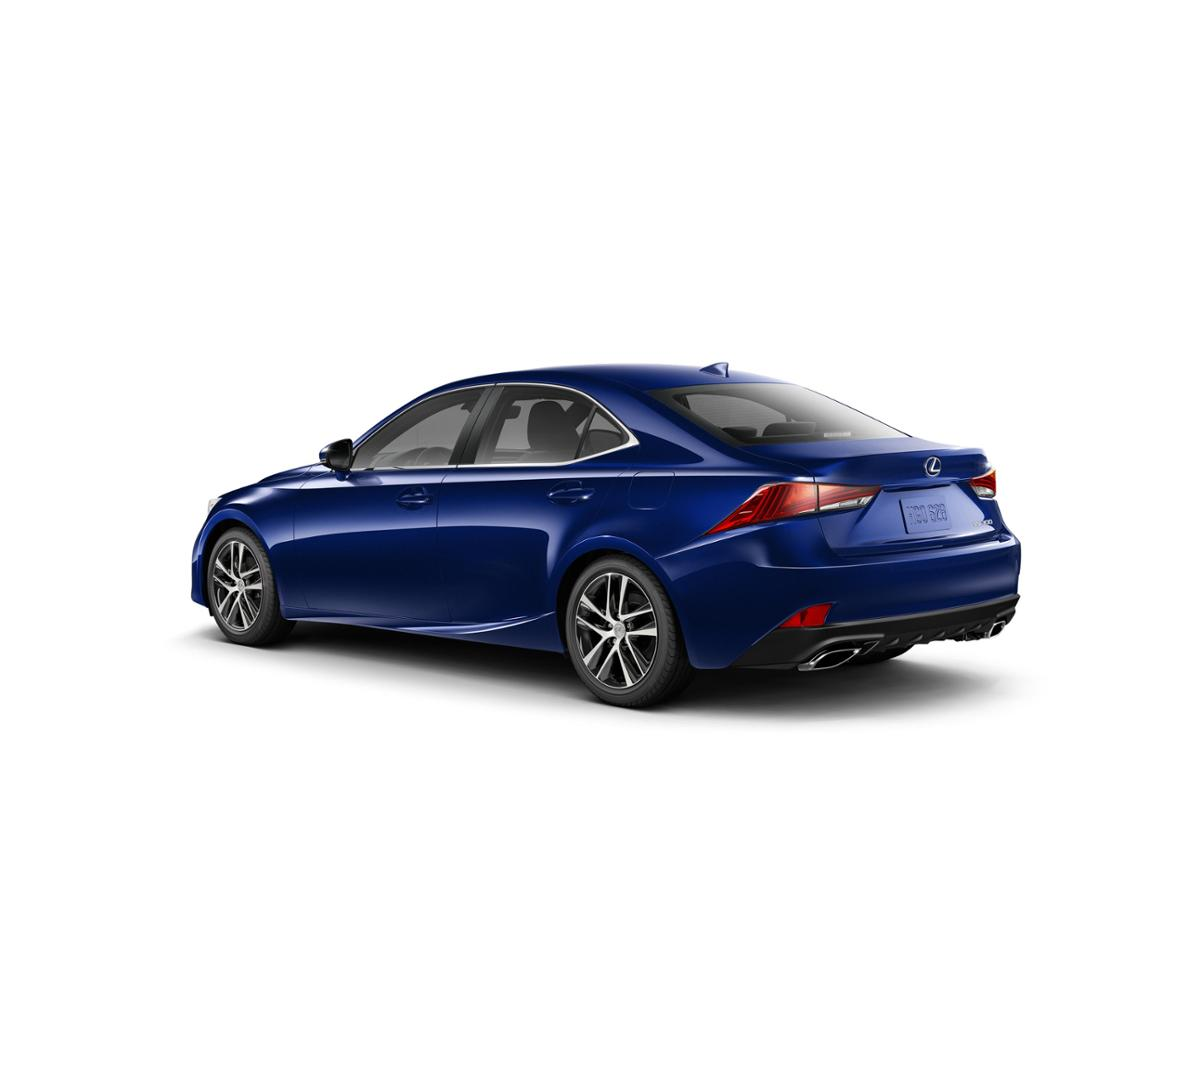 See This 2019 Lexus IS 300 On Long Island In St James